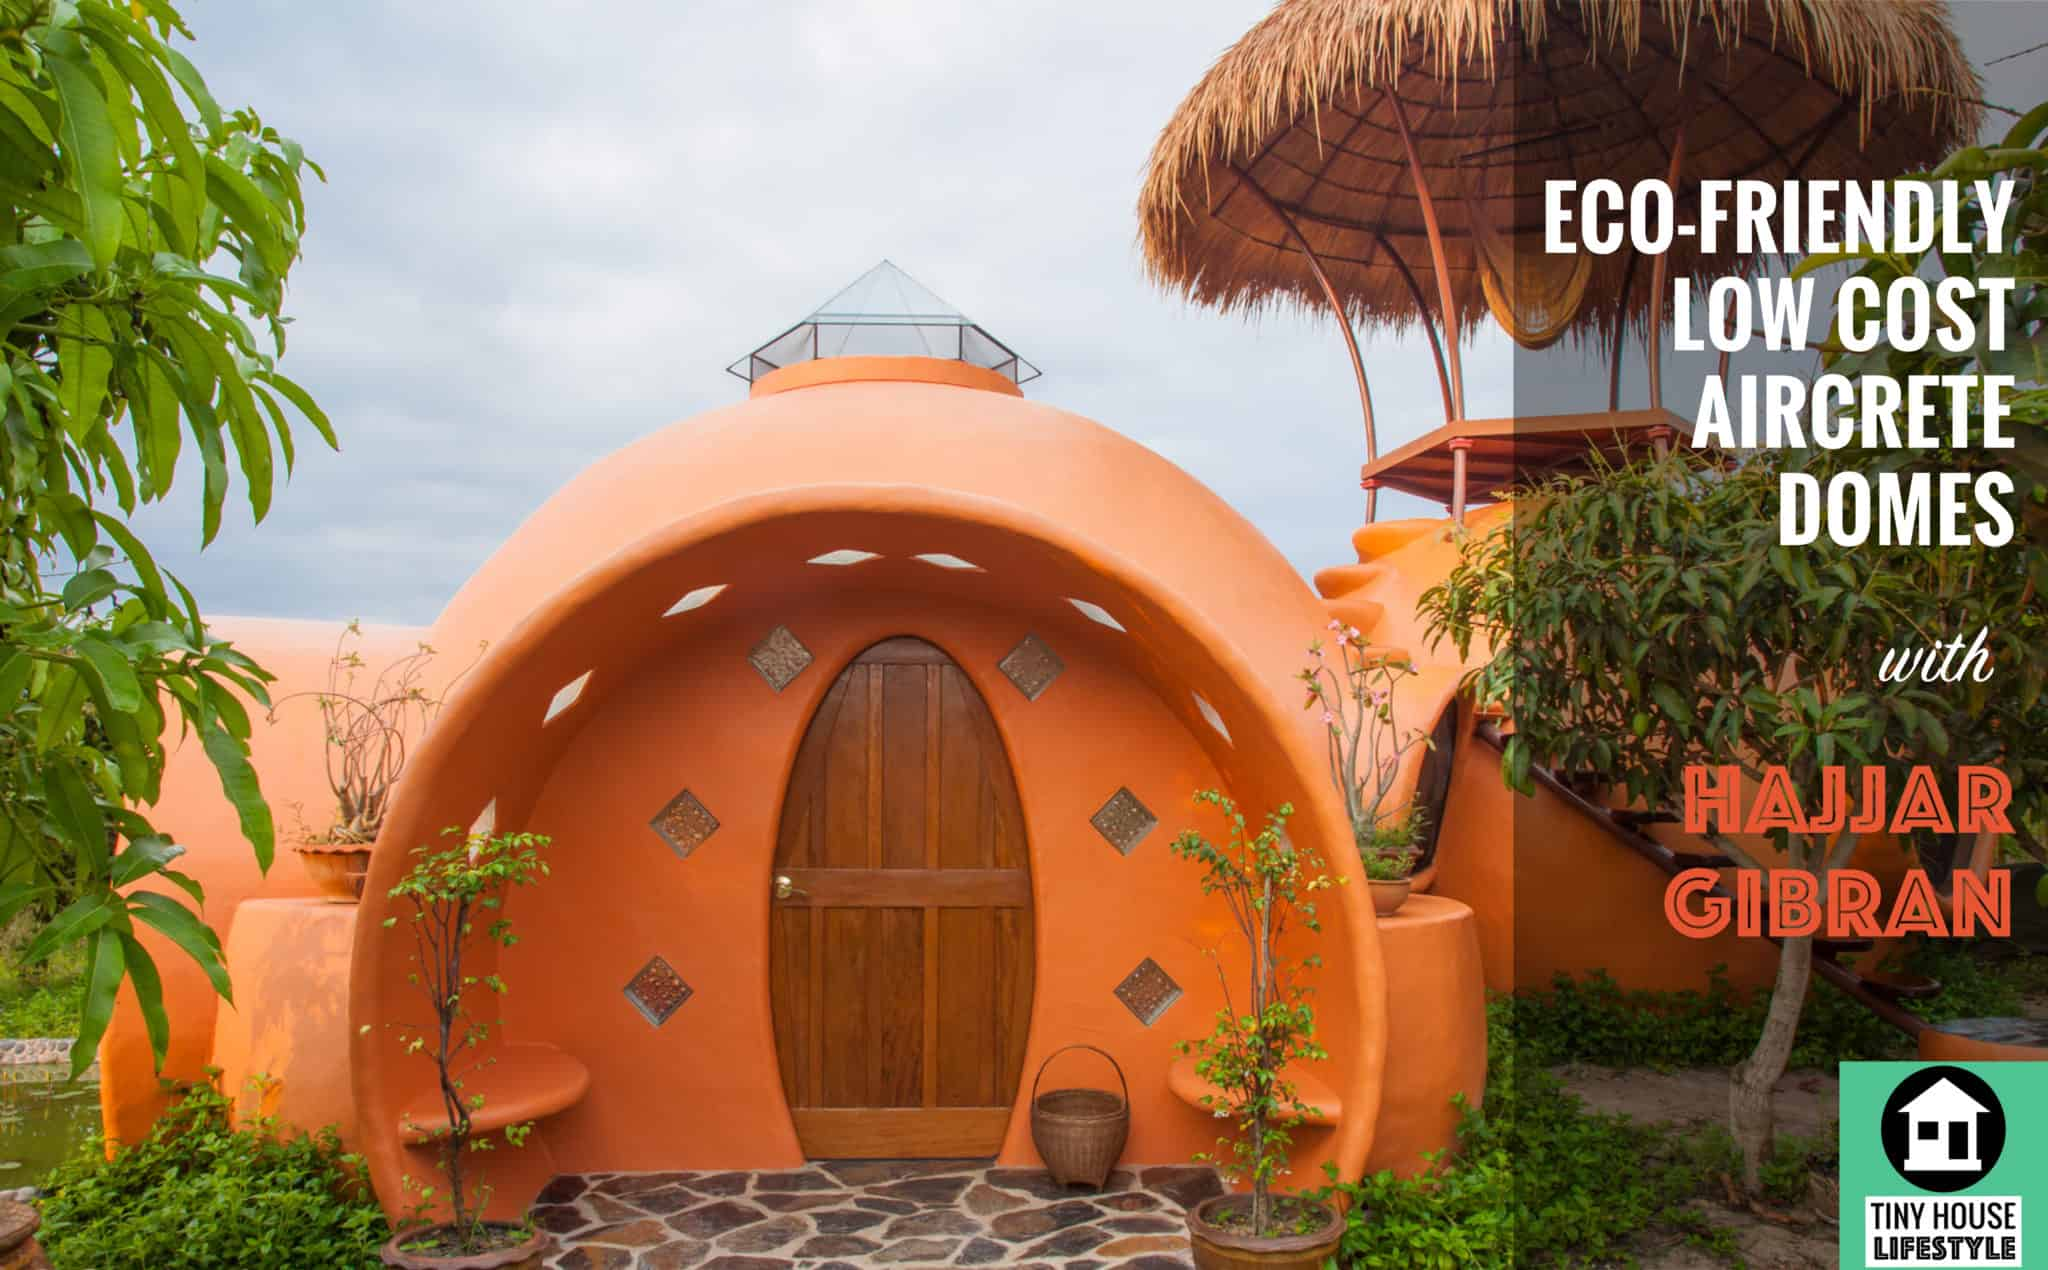 How to Build with Aircrete: The Low Cost, Eco-Friendly